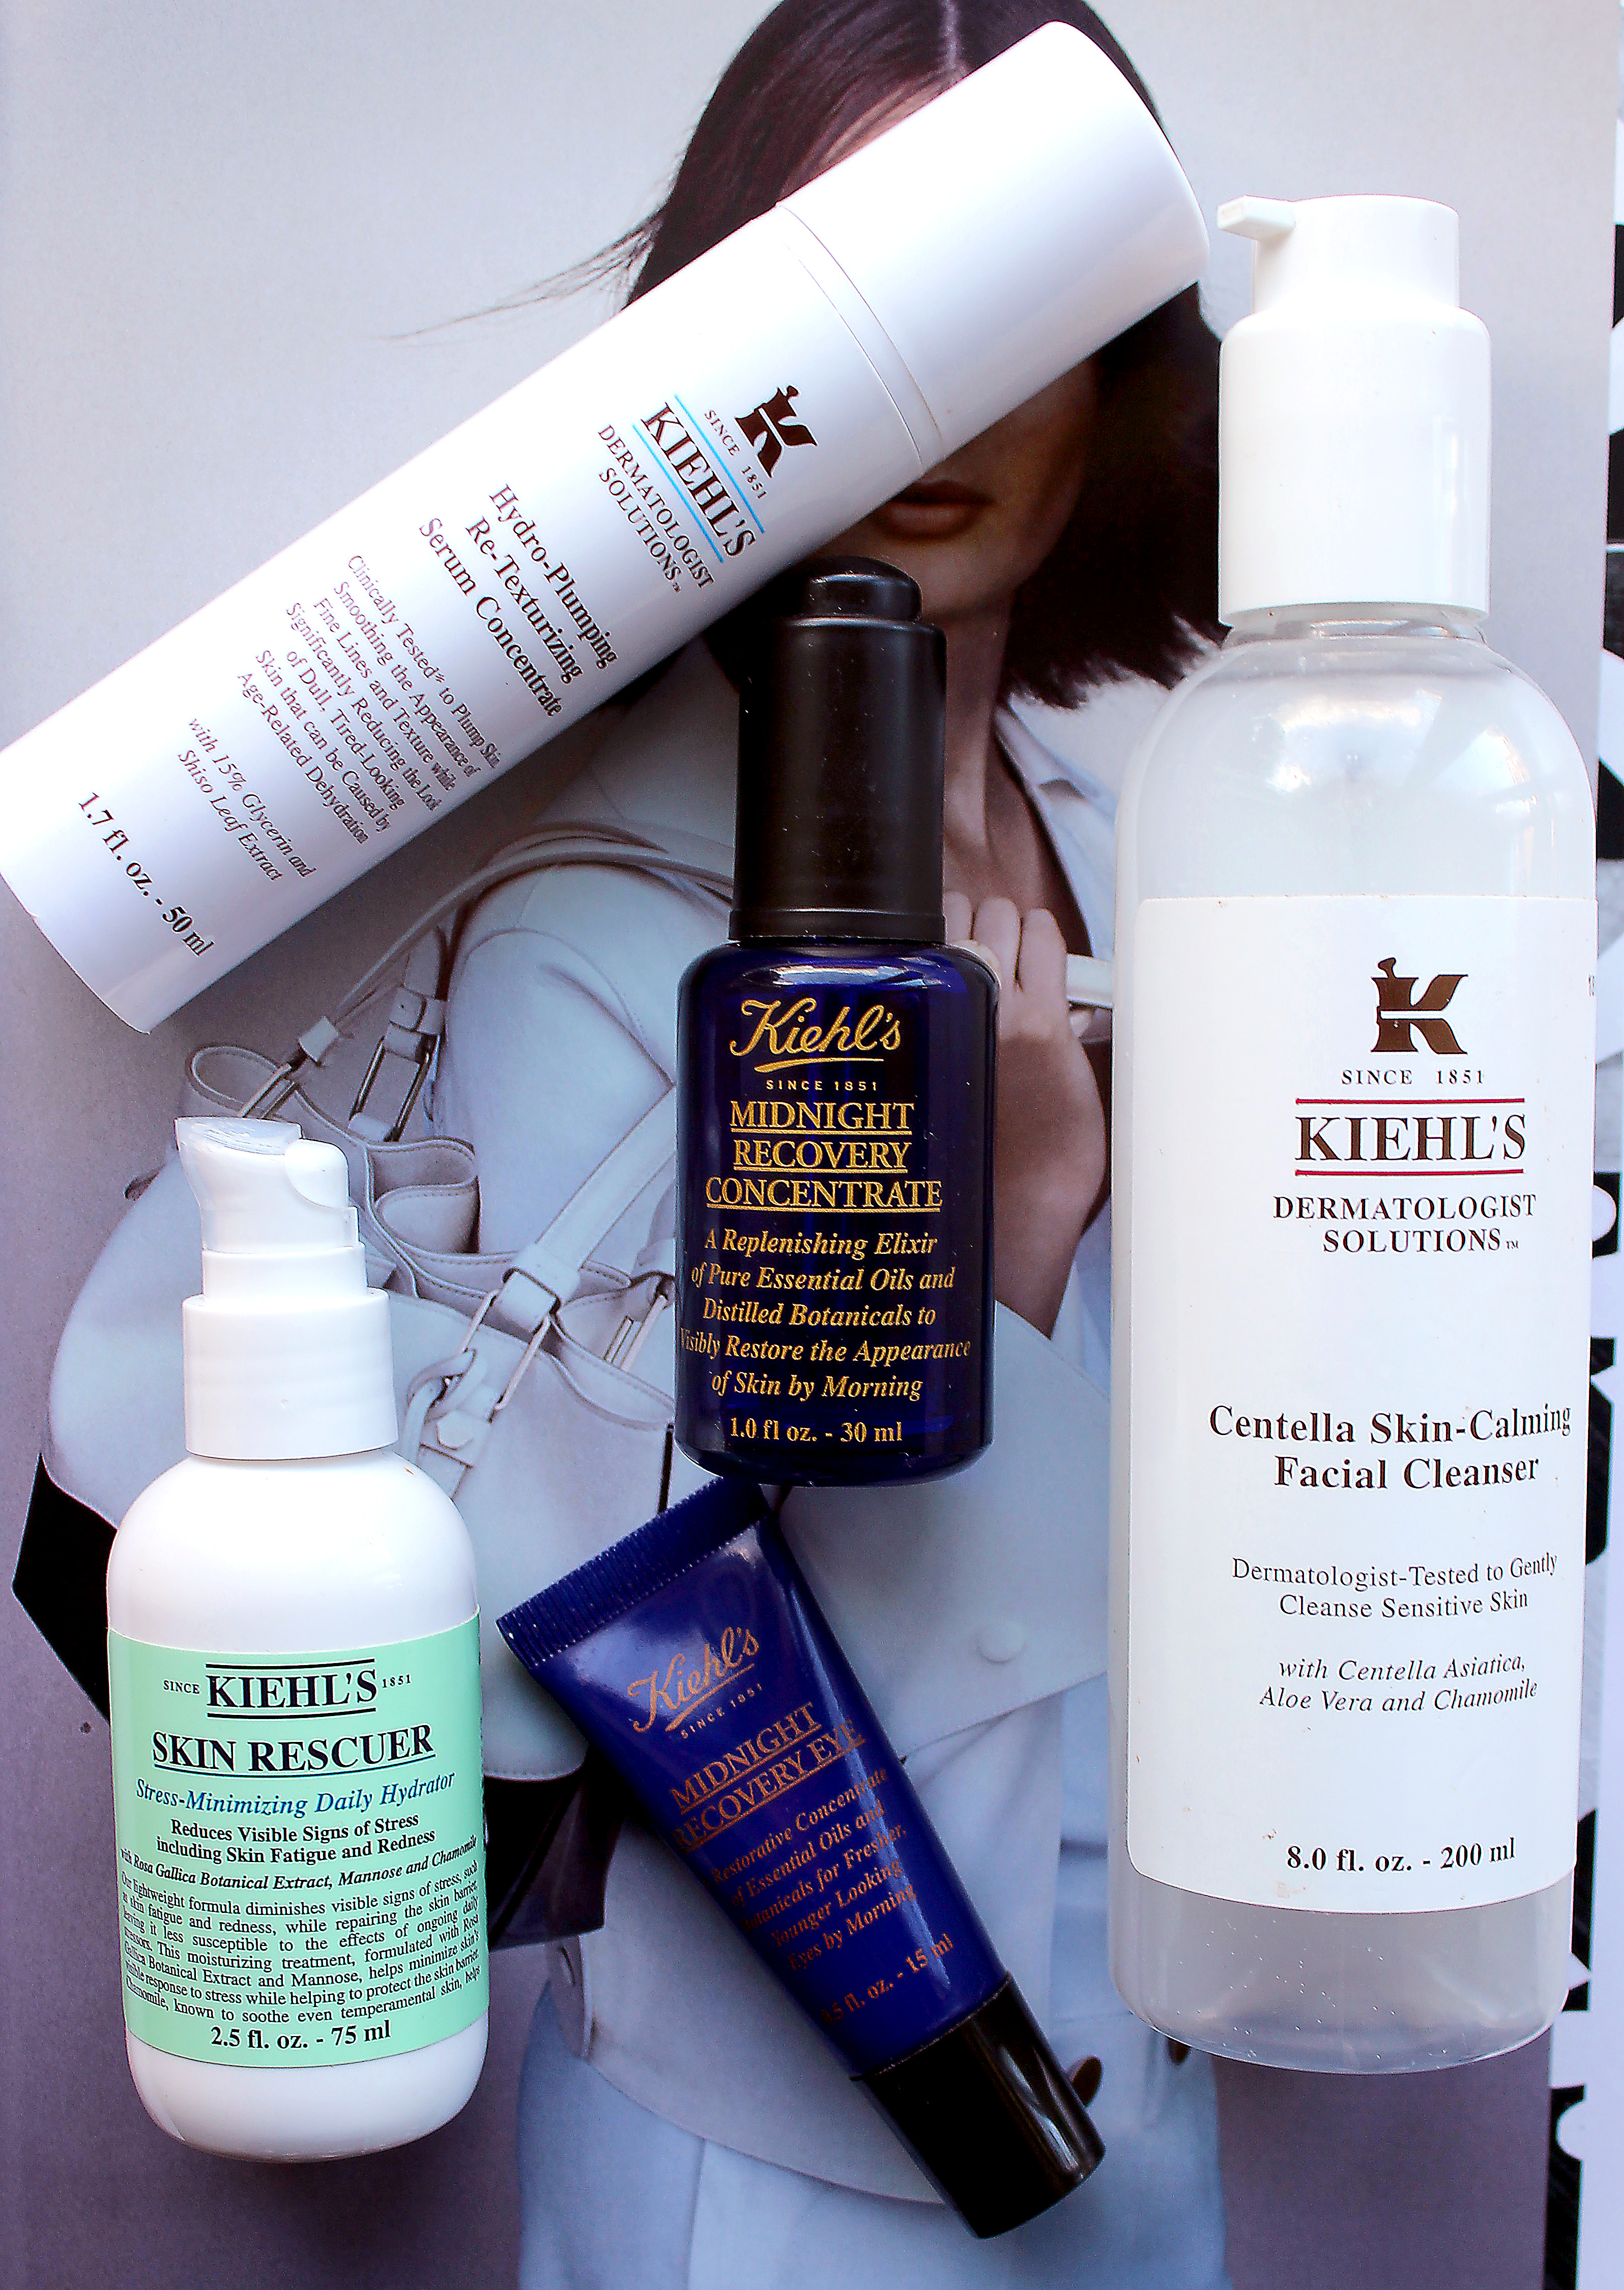 Top 5 Kiehls Products